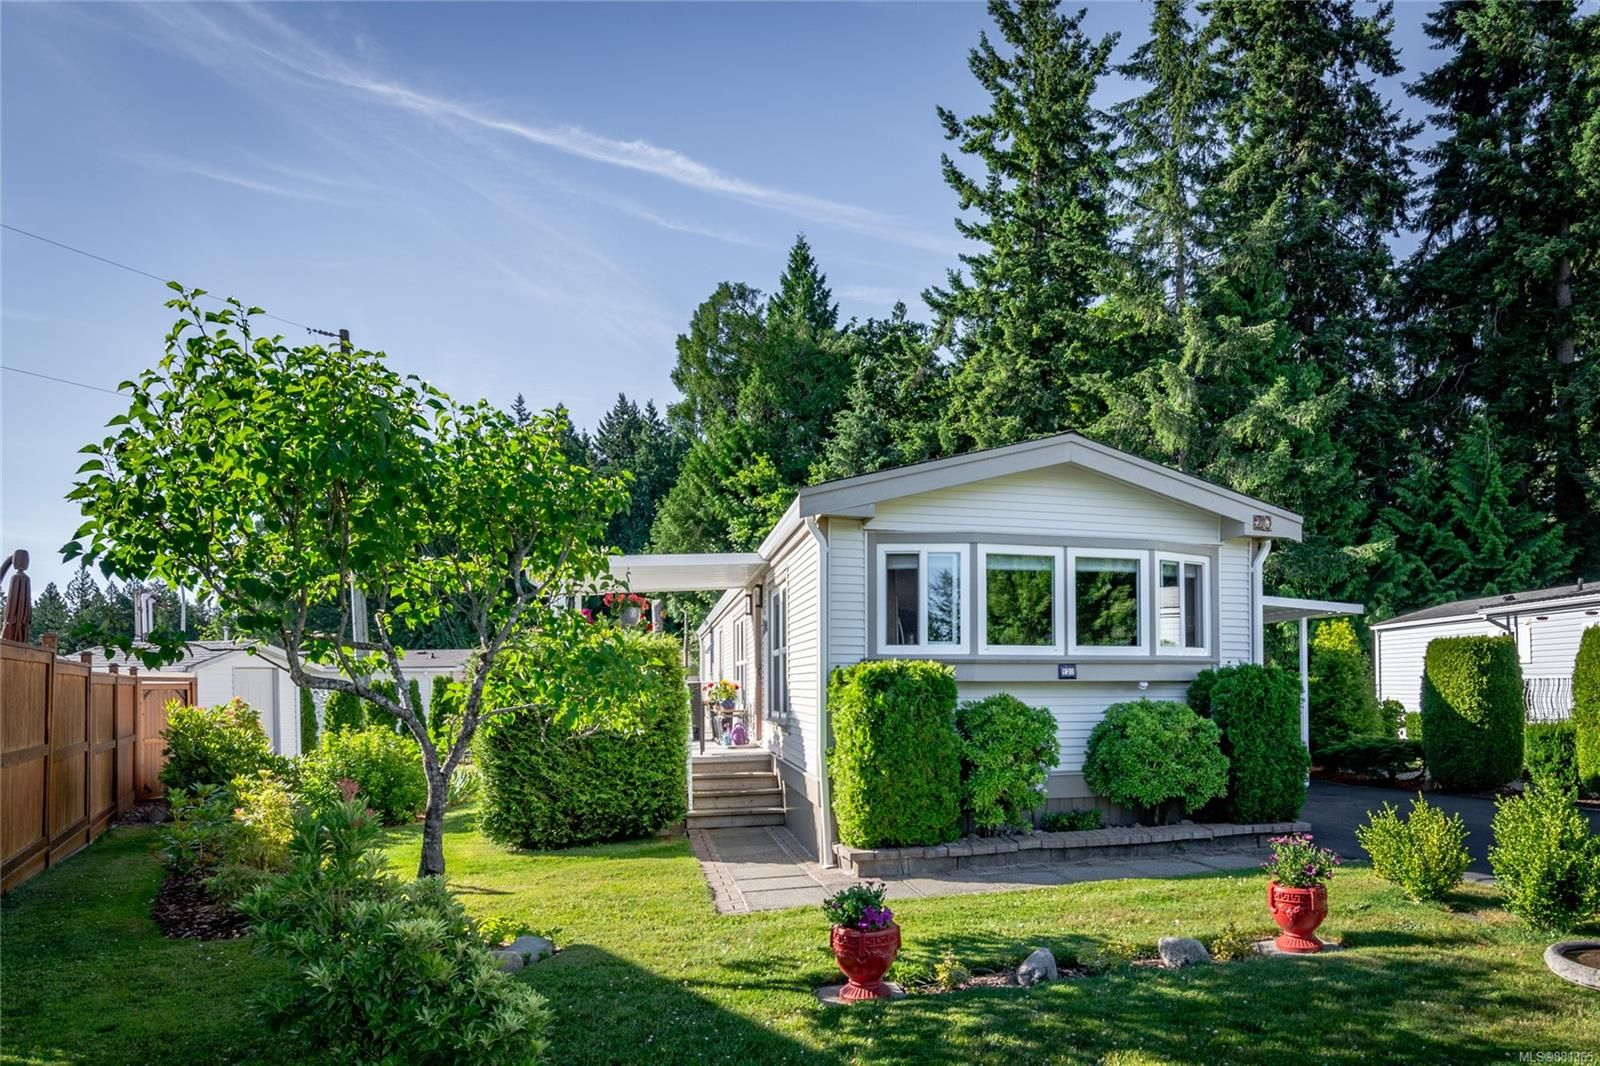 Main Photo: 20 2301 Arbot Rd in : Na North Nanaimo Manufactured Home for sale (Nanaimo)  : MLS®# 881365